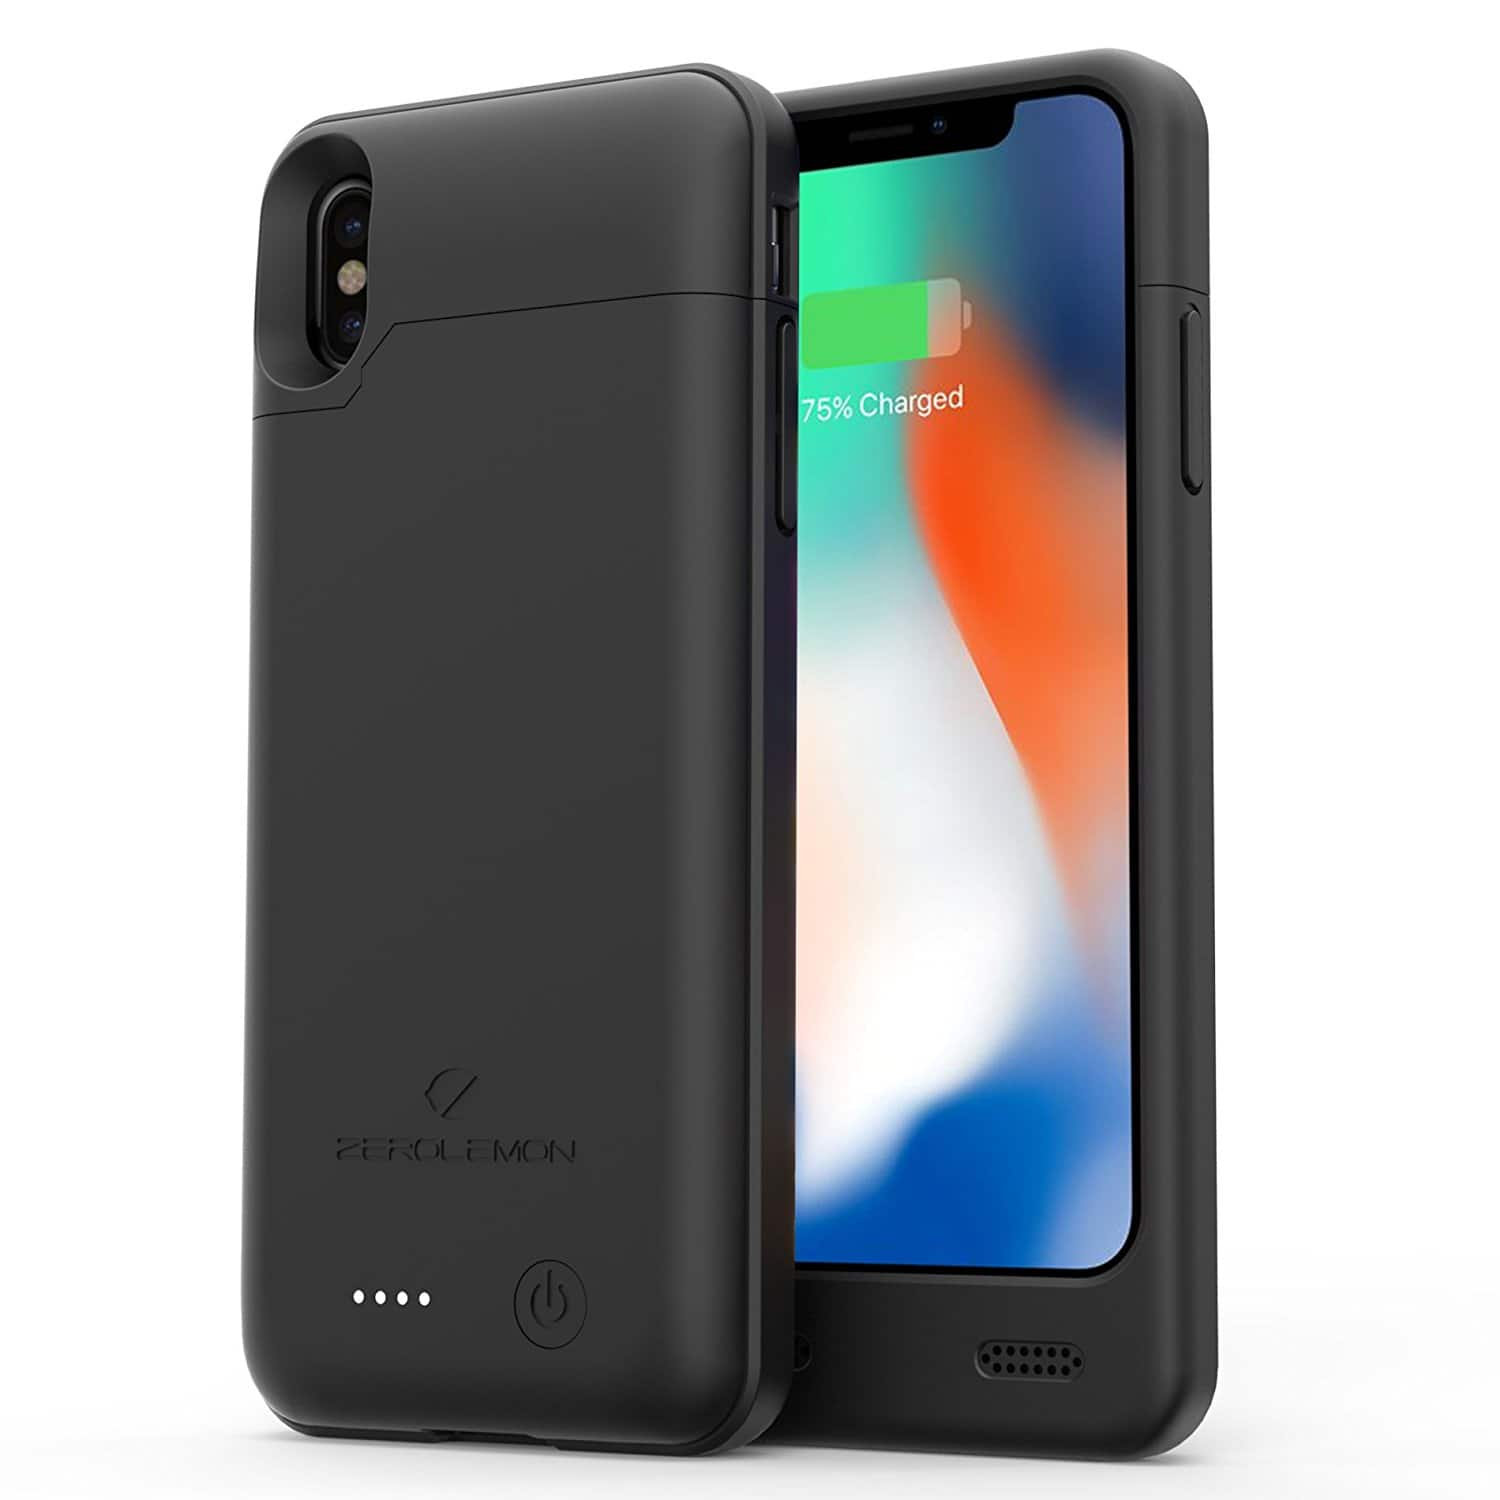 $29.99 iPhone X Battery Slim Case on sale! Zerolemon via Amazon  also has battery cases on sale: iPhone 6/6s Battery Case $15, iPhone 5/5s Battery Case $8.99